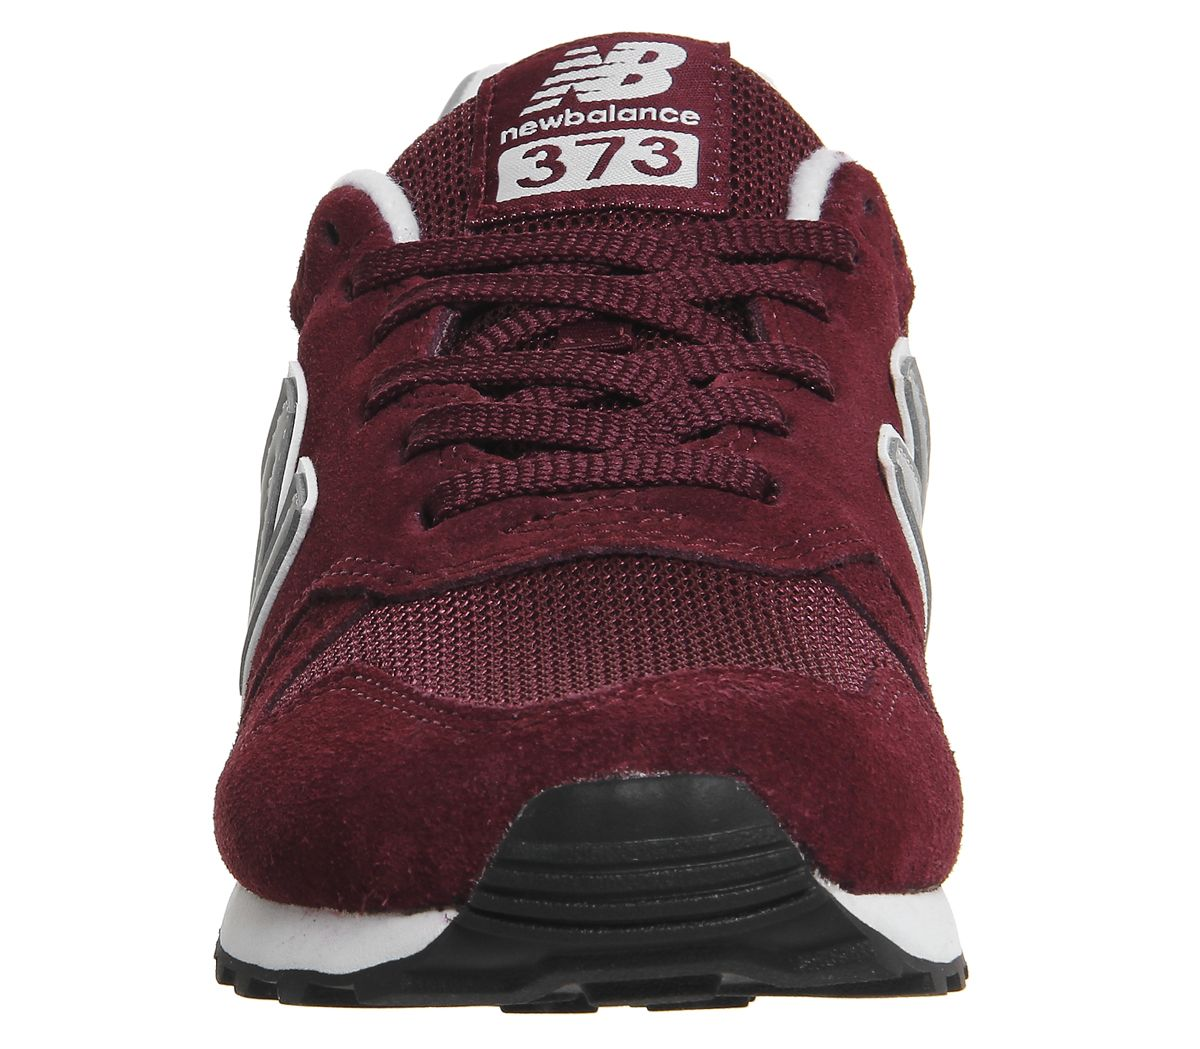 MENS NEW BALANCE 373 Burgundy Silver Trainers Shoes EUR 67